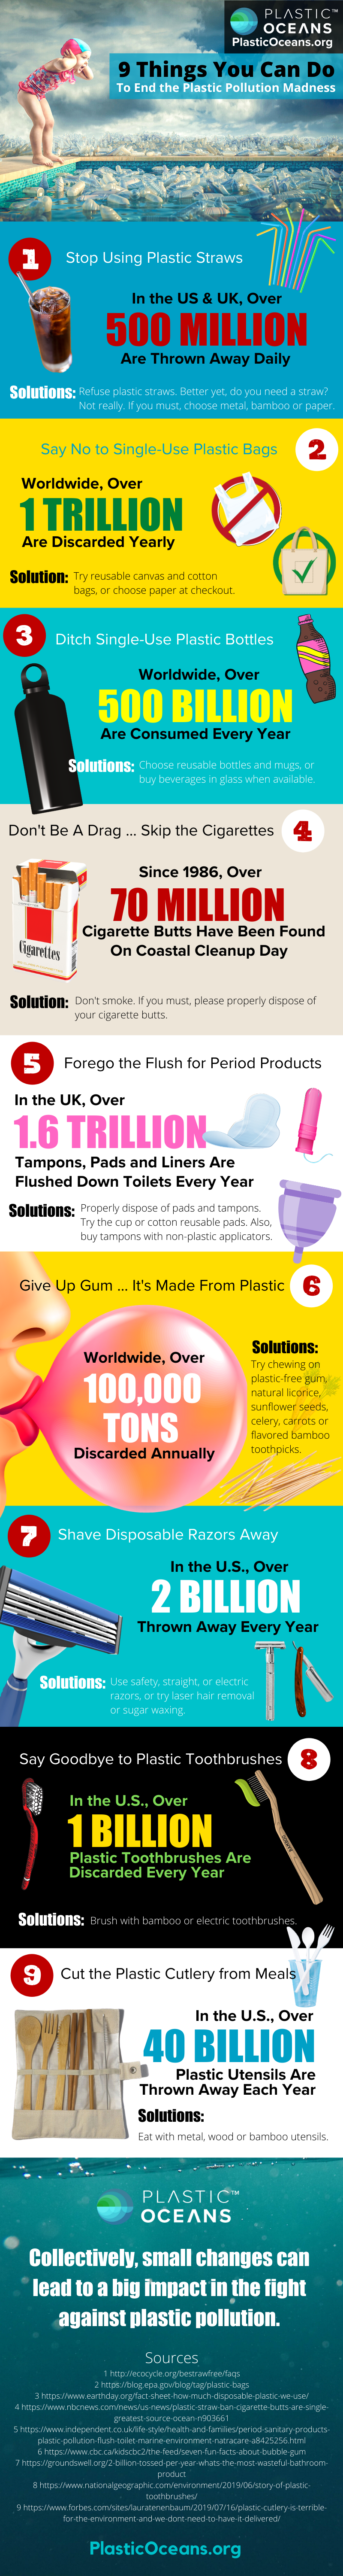 Infographic, 9 things you can do to end the plastic pollution madness